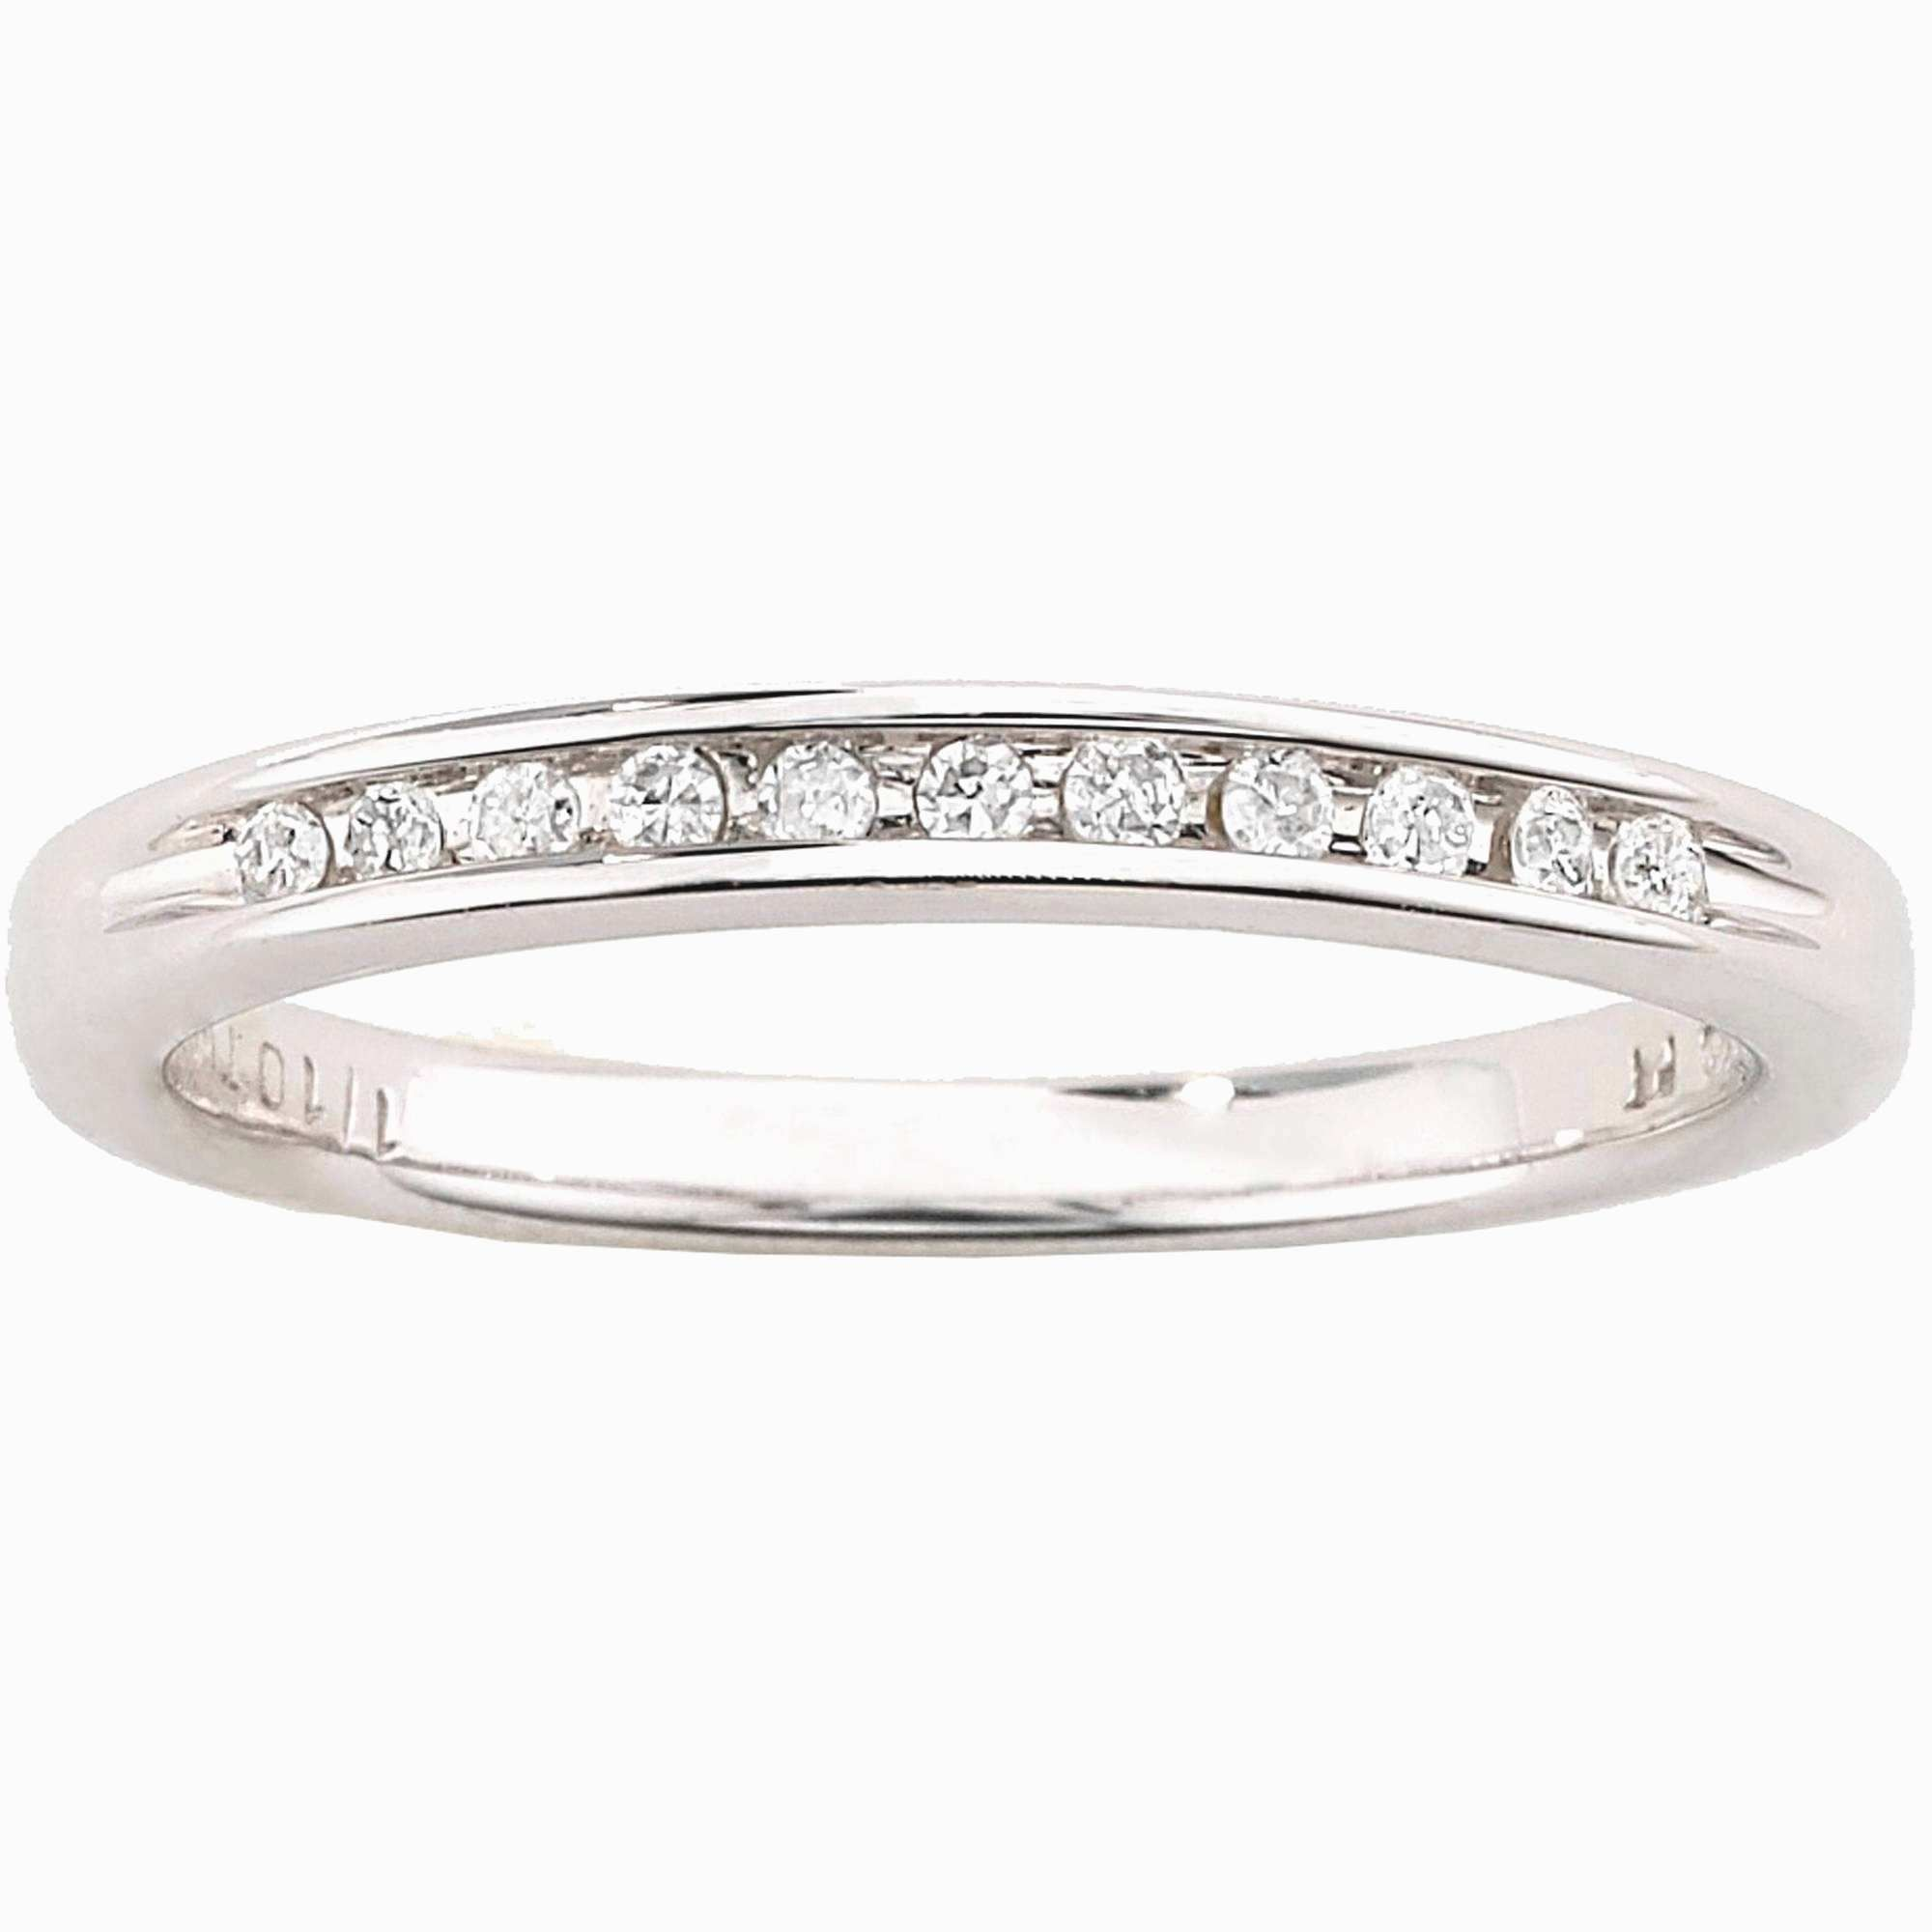 20 Size 14 Mens Wedding Rings Check More At Https Eeswl Info 200 Size 14 Mens Weddi Walmart Wedding Rings Diamond Wedding Bands Sterling Silver Wedding Sets